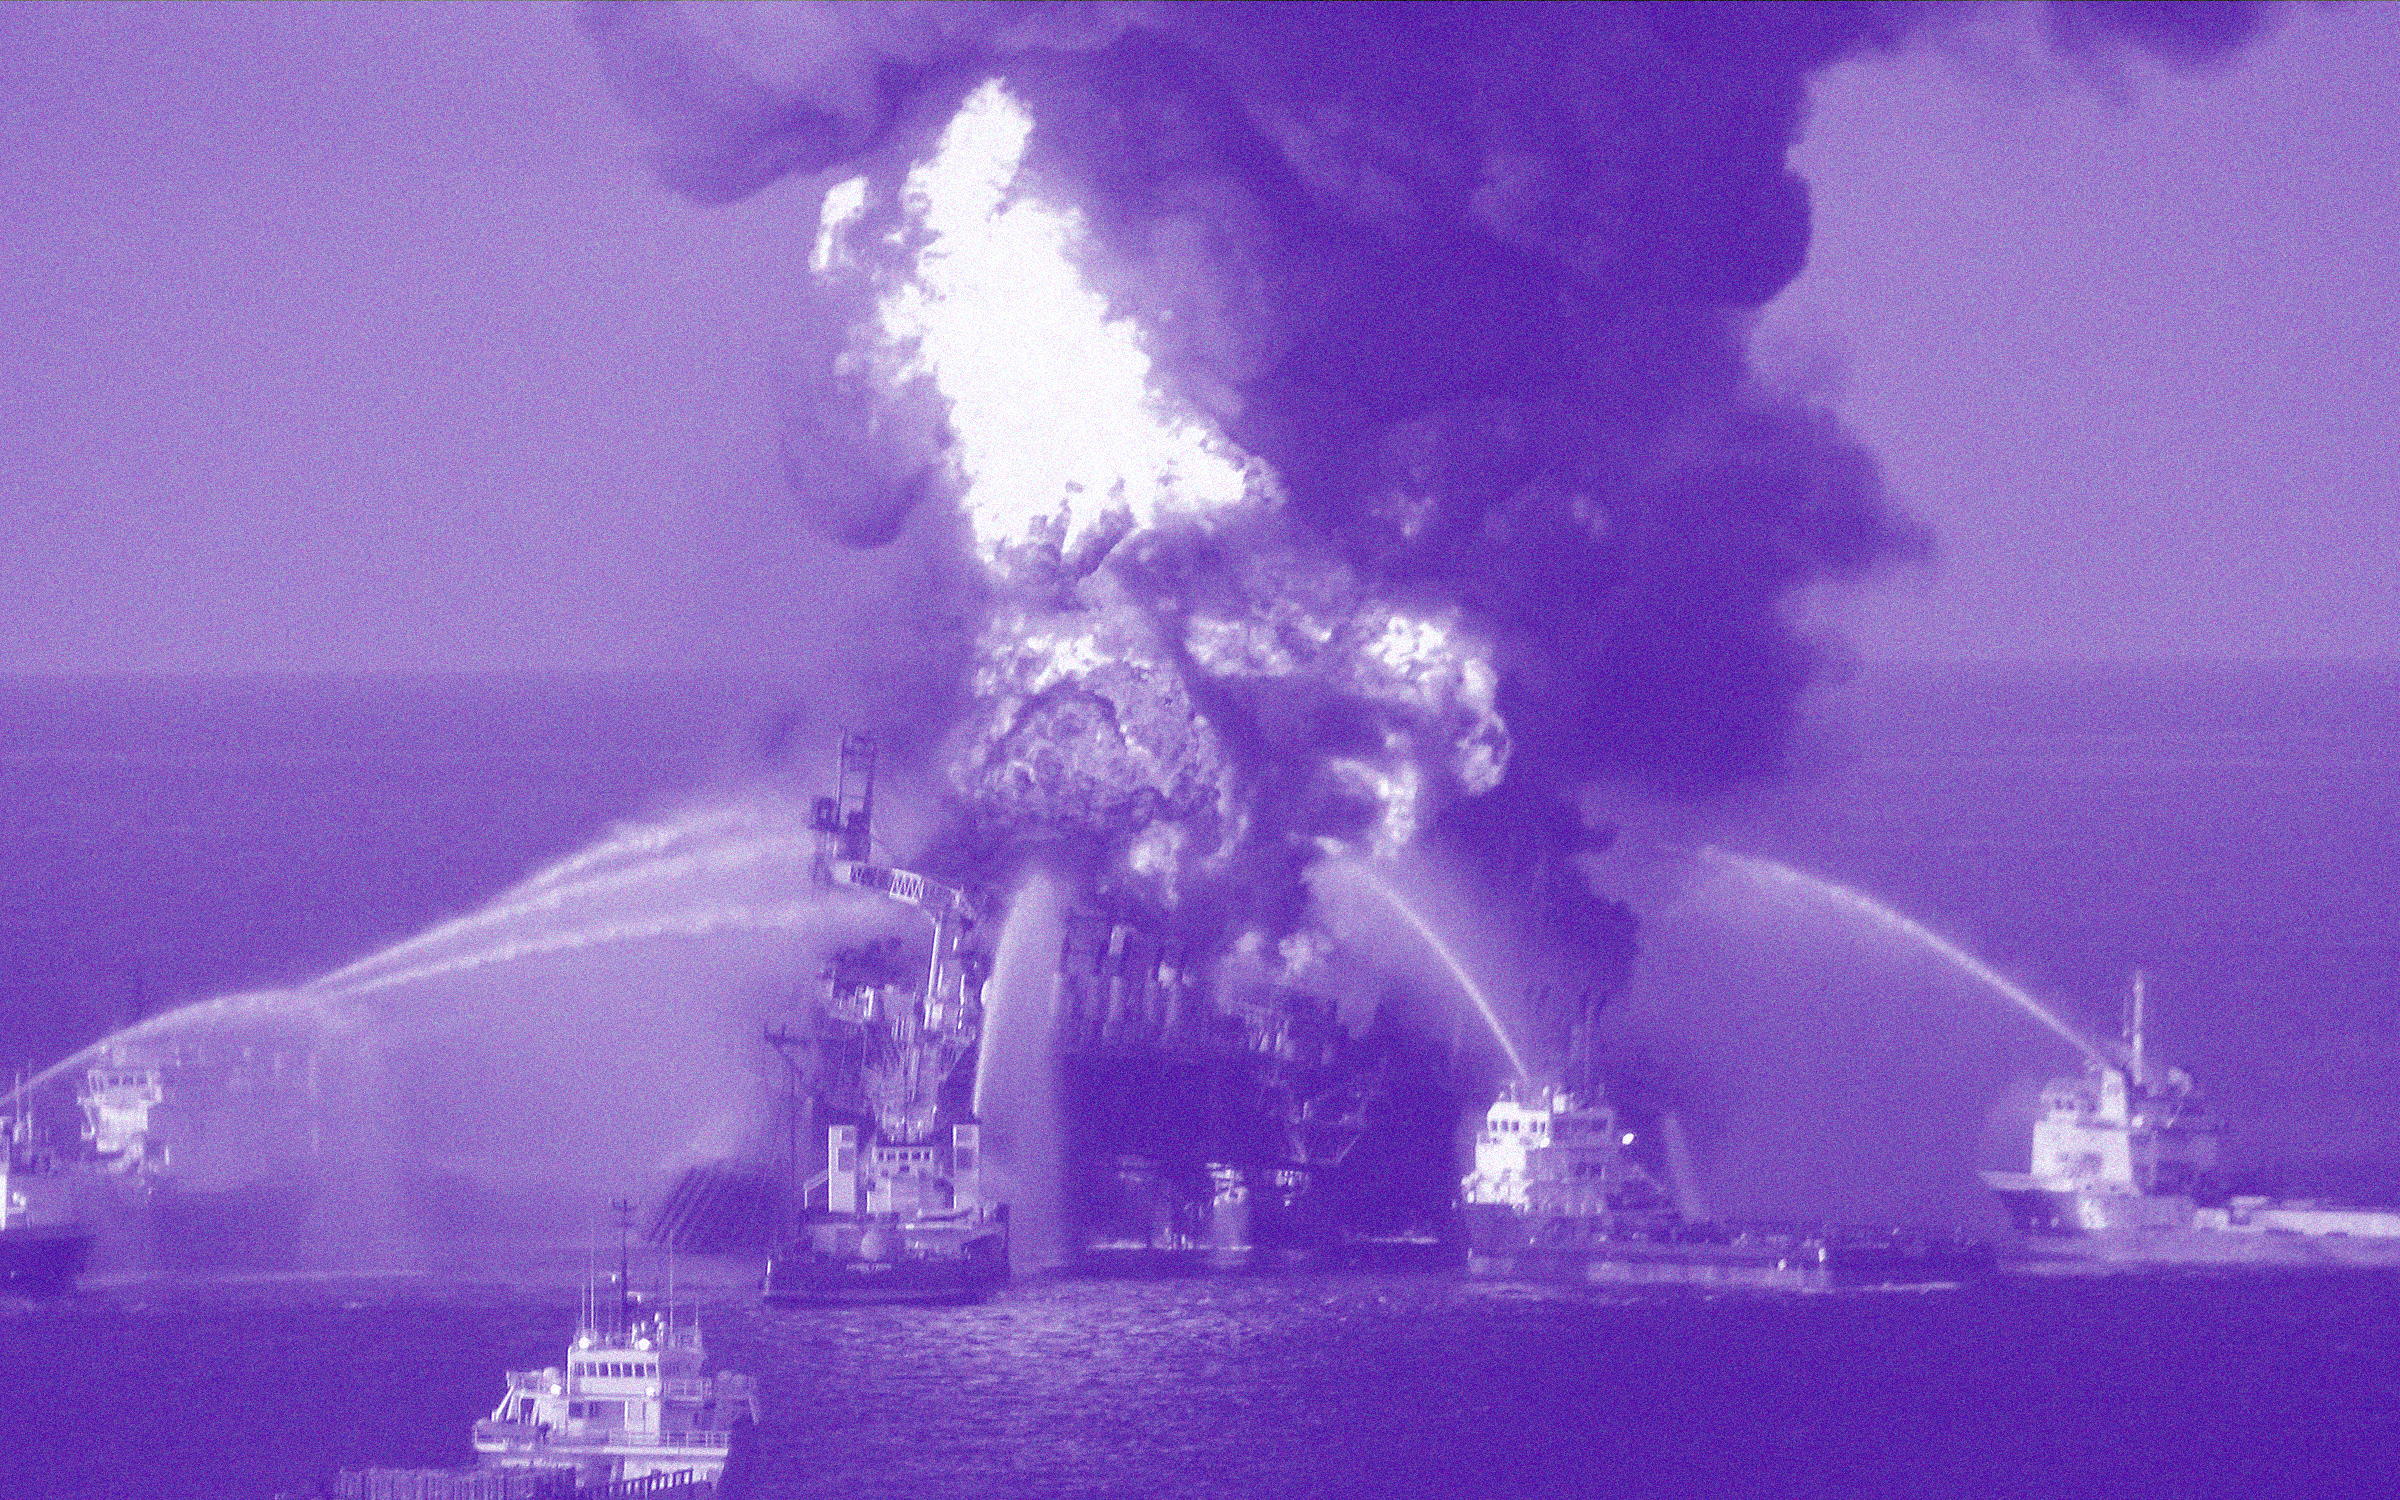 A photo illustration of the Deepwater Horizon oil rig in flames, with fire crews trying to put it out.